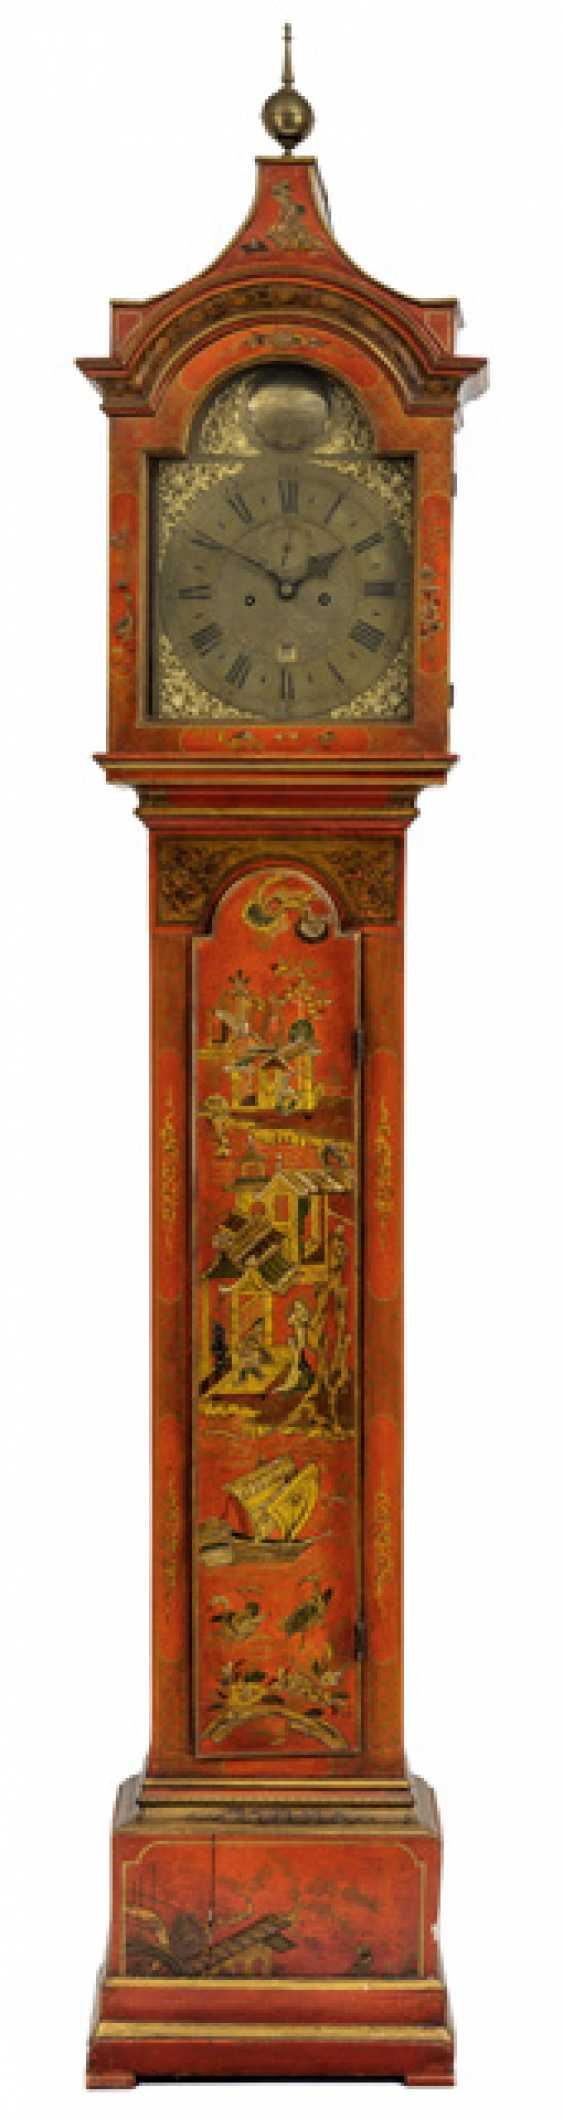 Longcase clock in the chinoisen style. Name Charles Harris Lynn, England, At The End Of 18. Century - photo 1